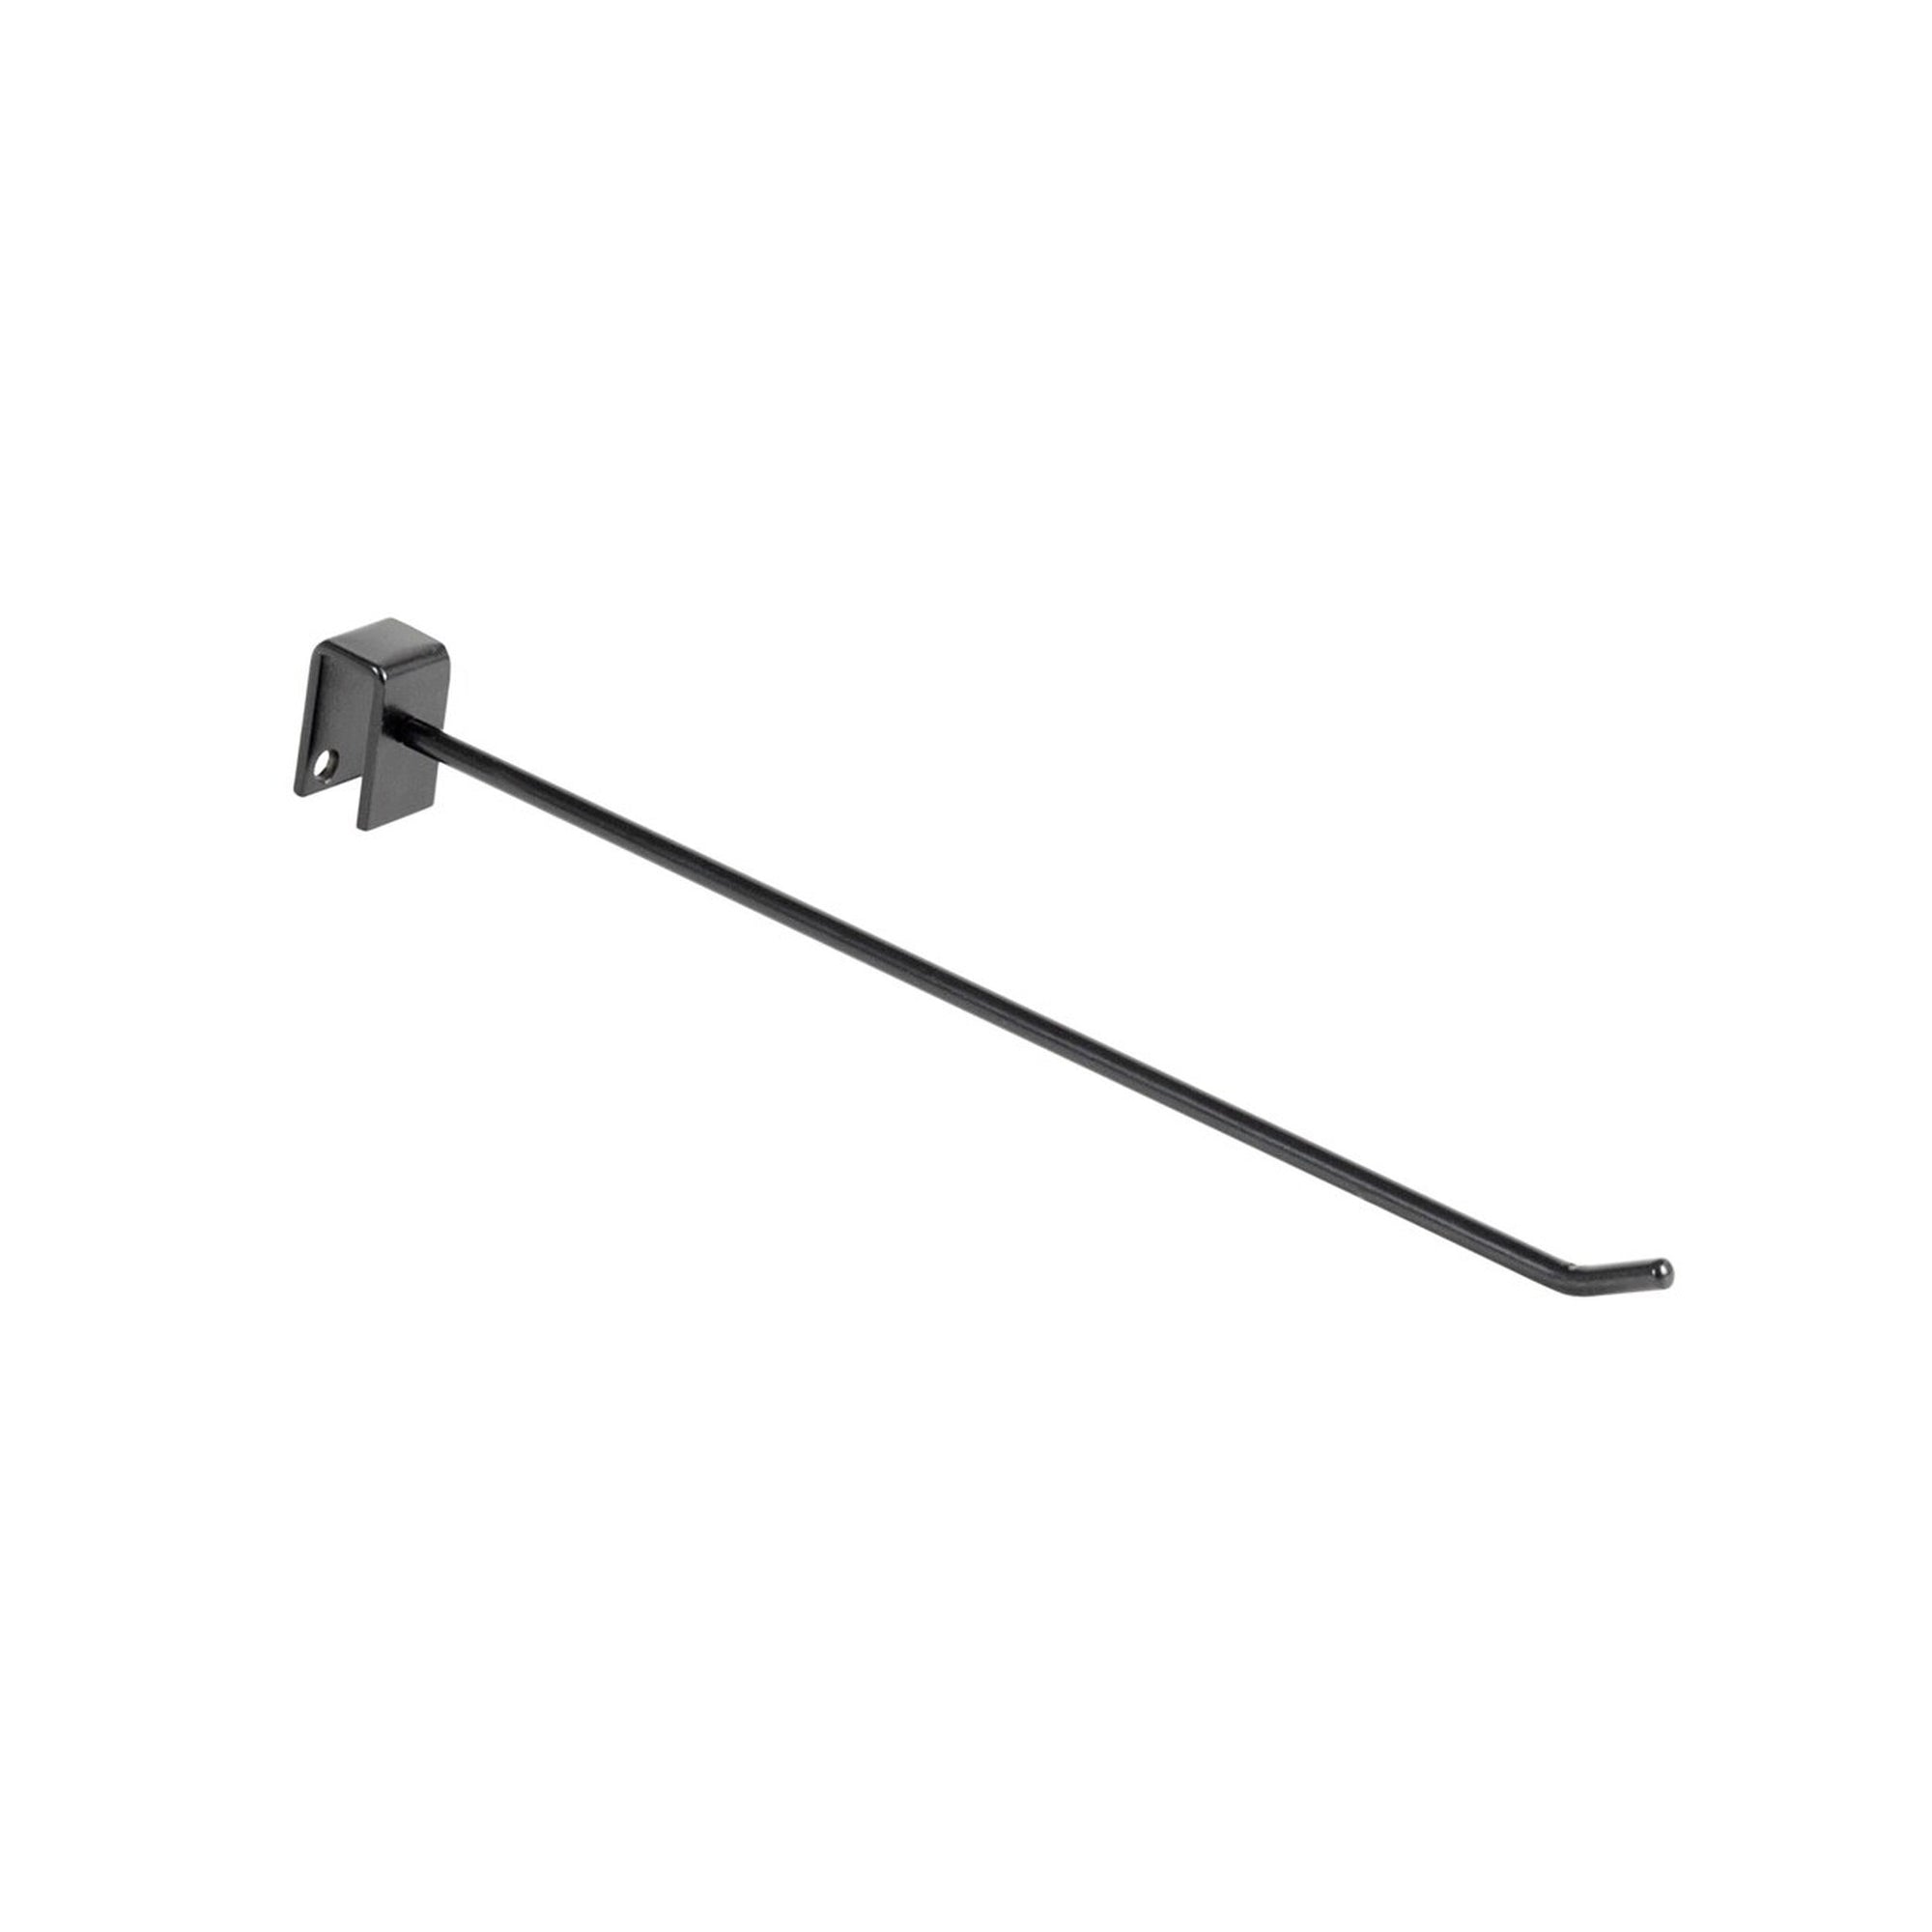 MAXe Backrail Hook - 300mm D x 6mm DIA wire (E4930)